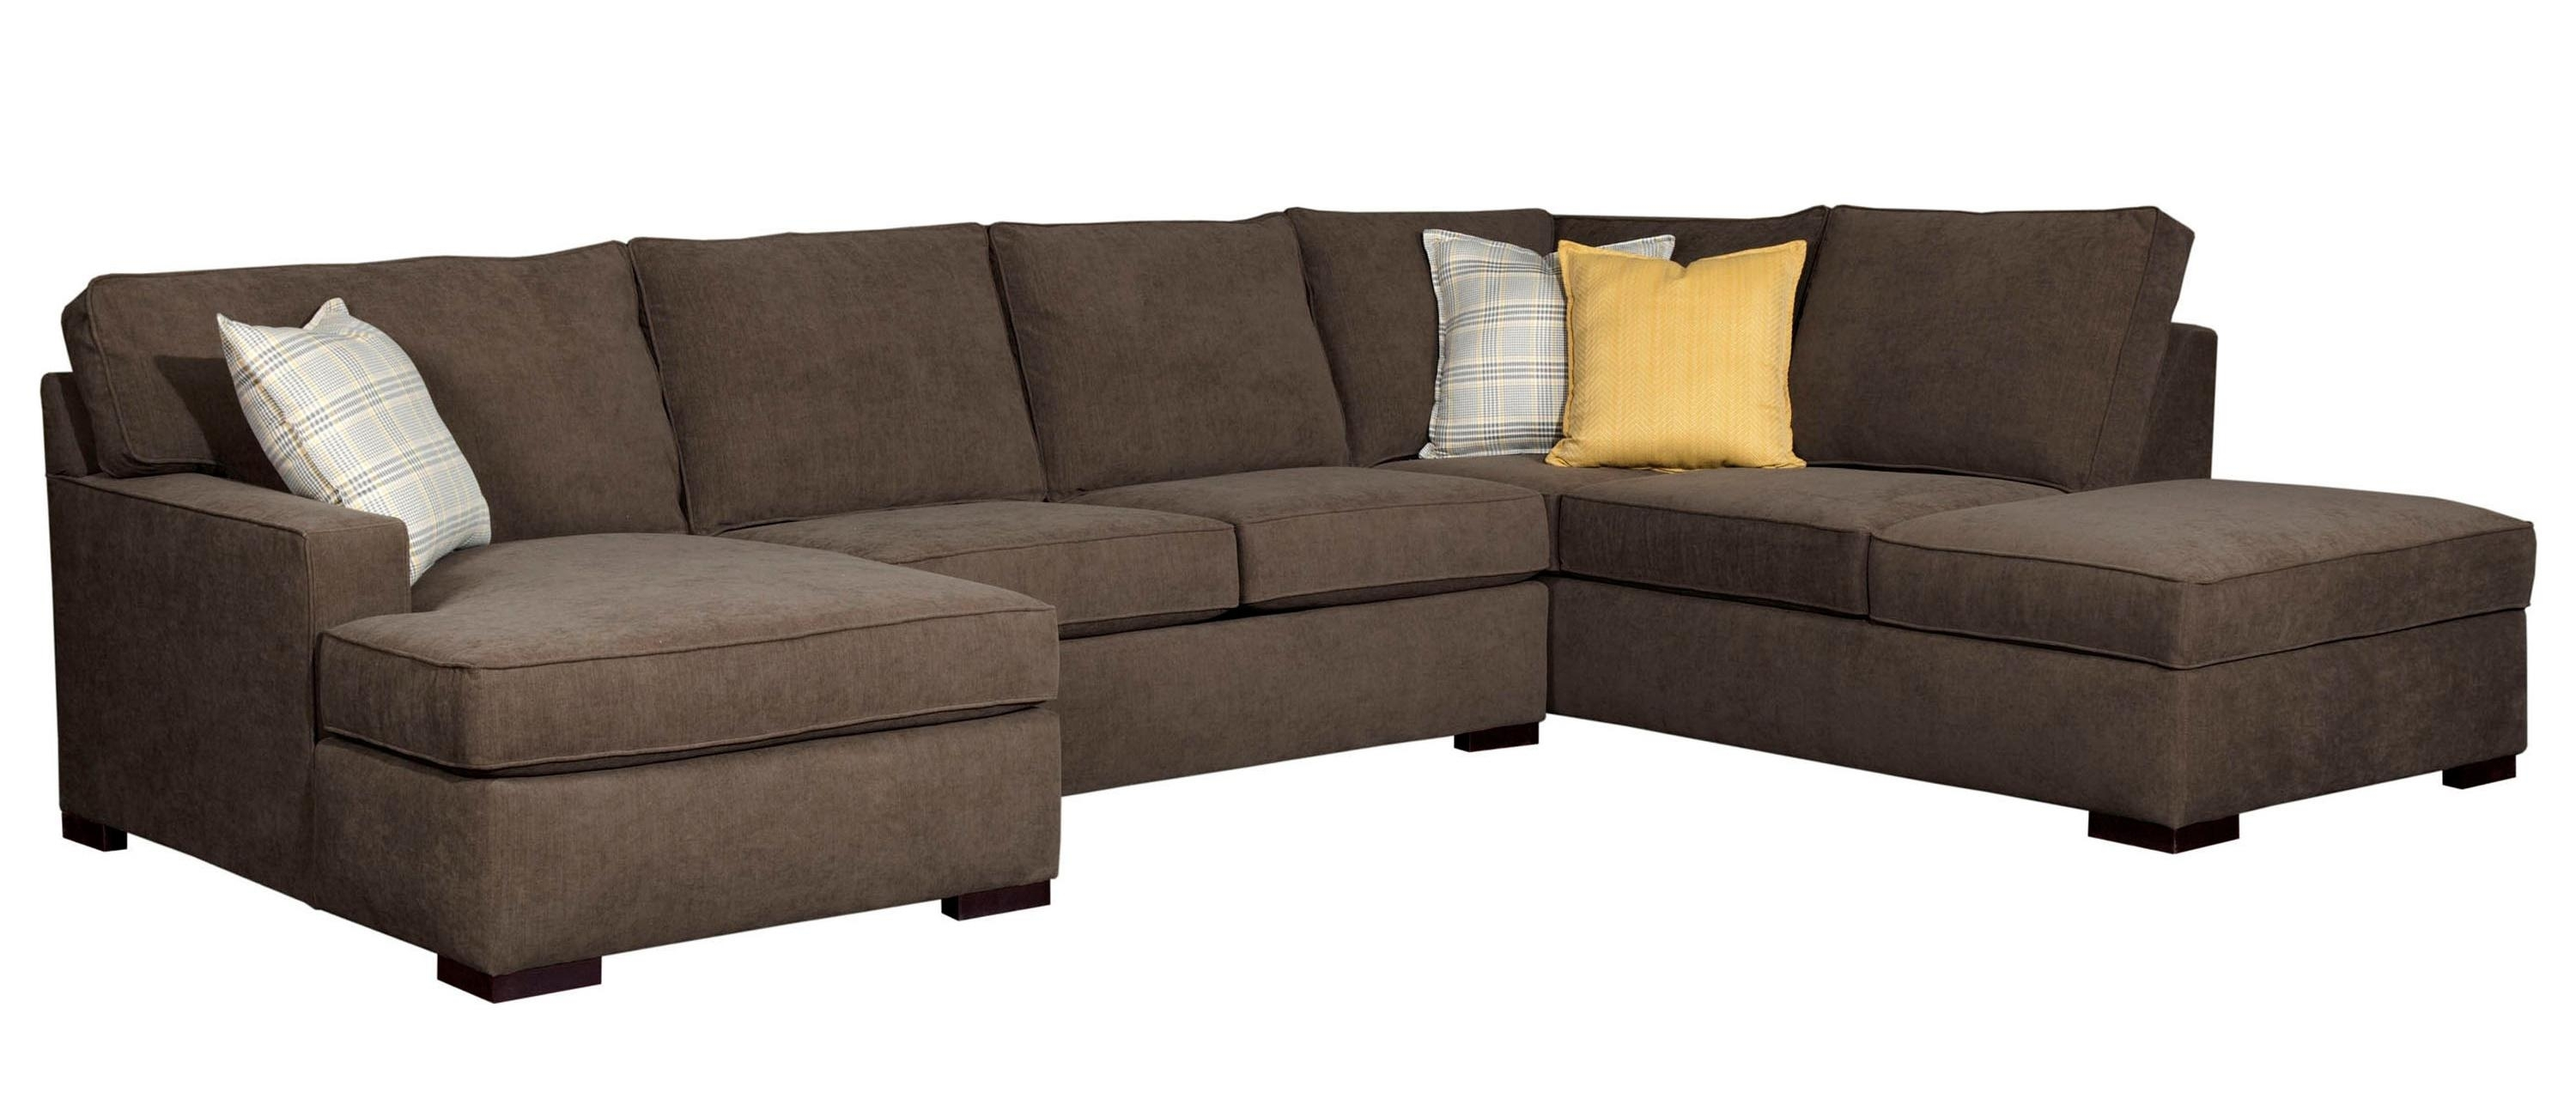 Broyhill Furniture Raphael Contemporary Sectional Sofa With Laf intended for Sectional Sofas at Broyhill (Image 4 of 15)